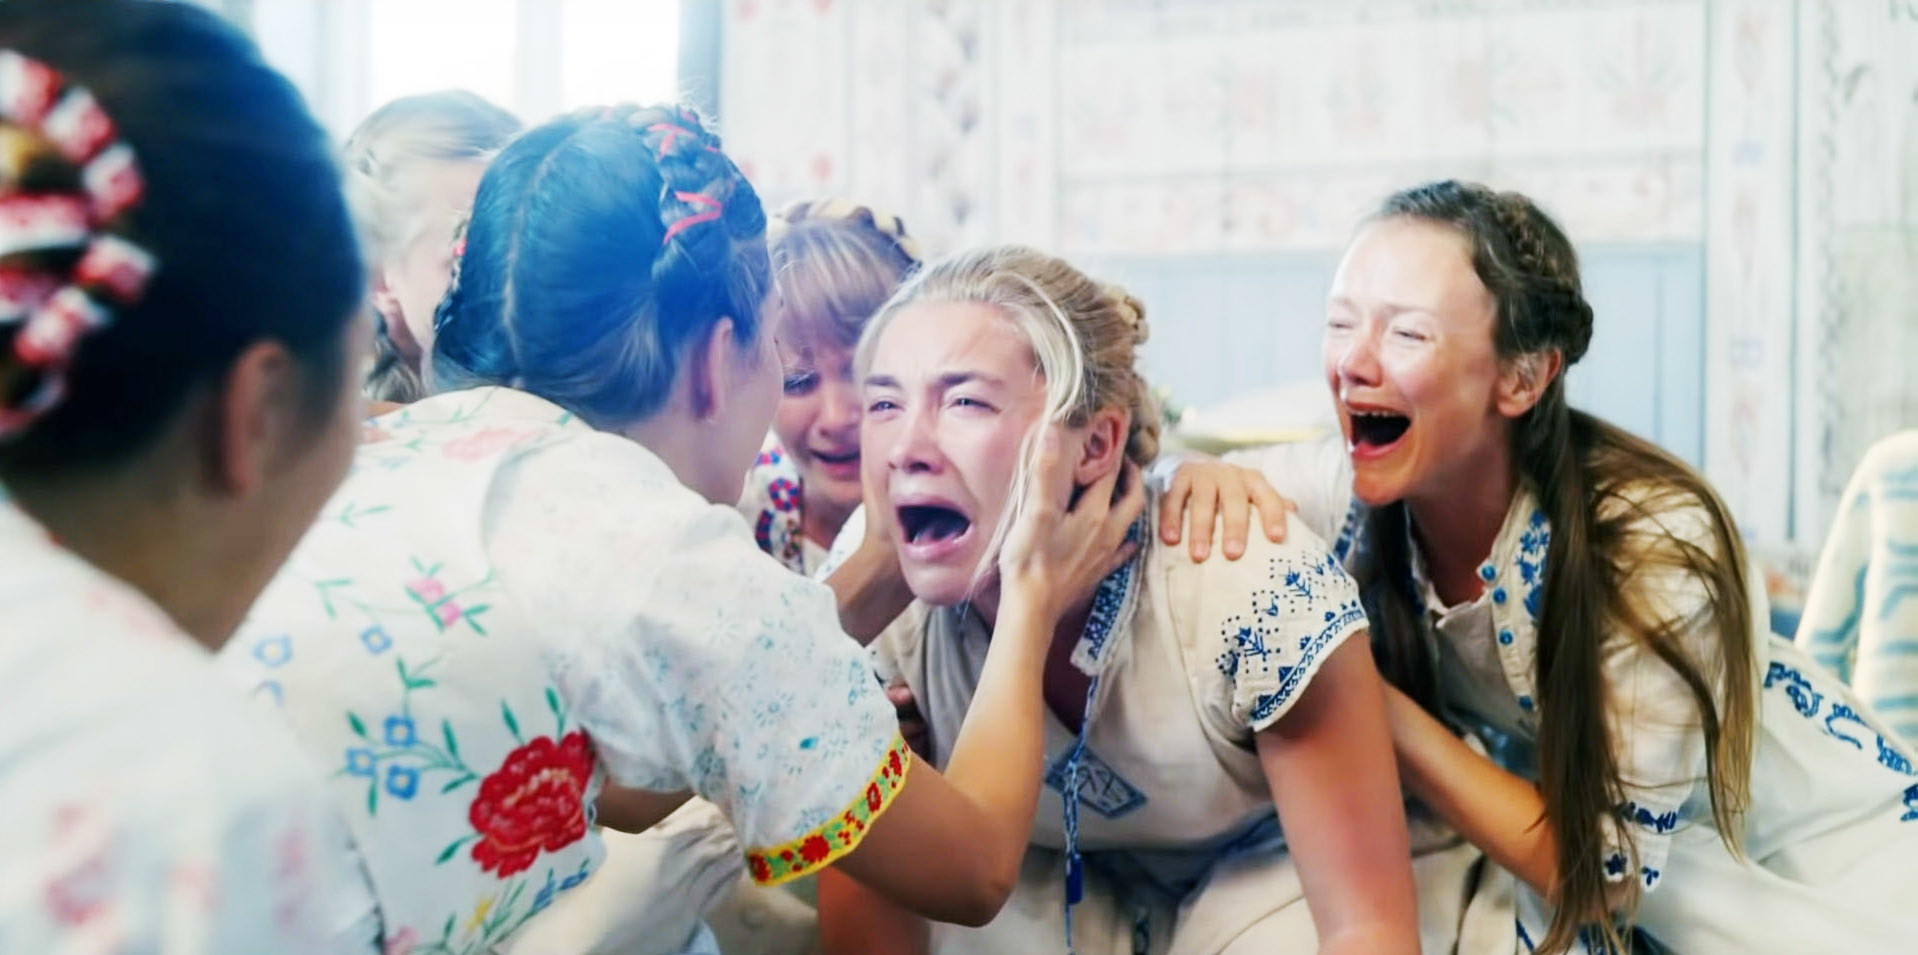 the women holding Florence Pugh as she screams and cries